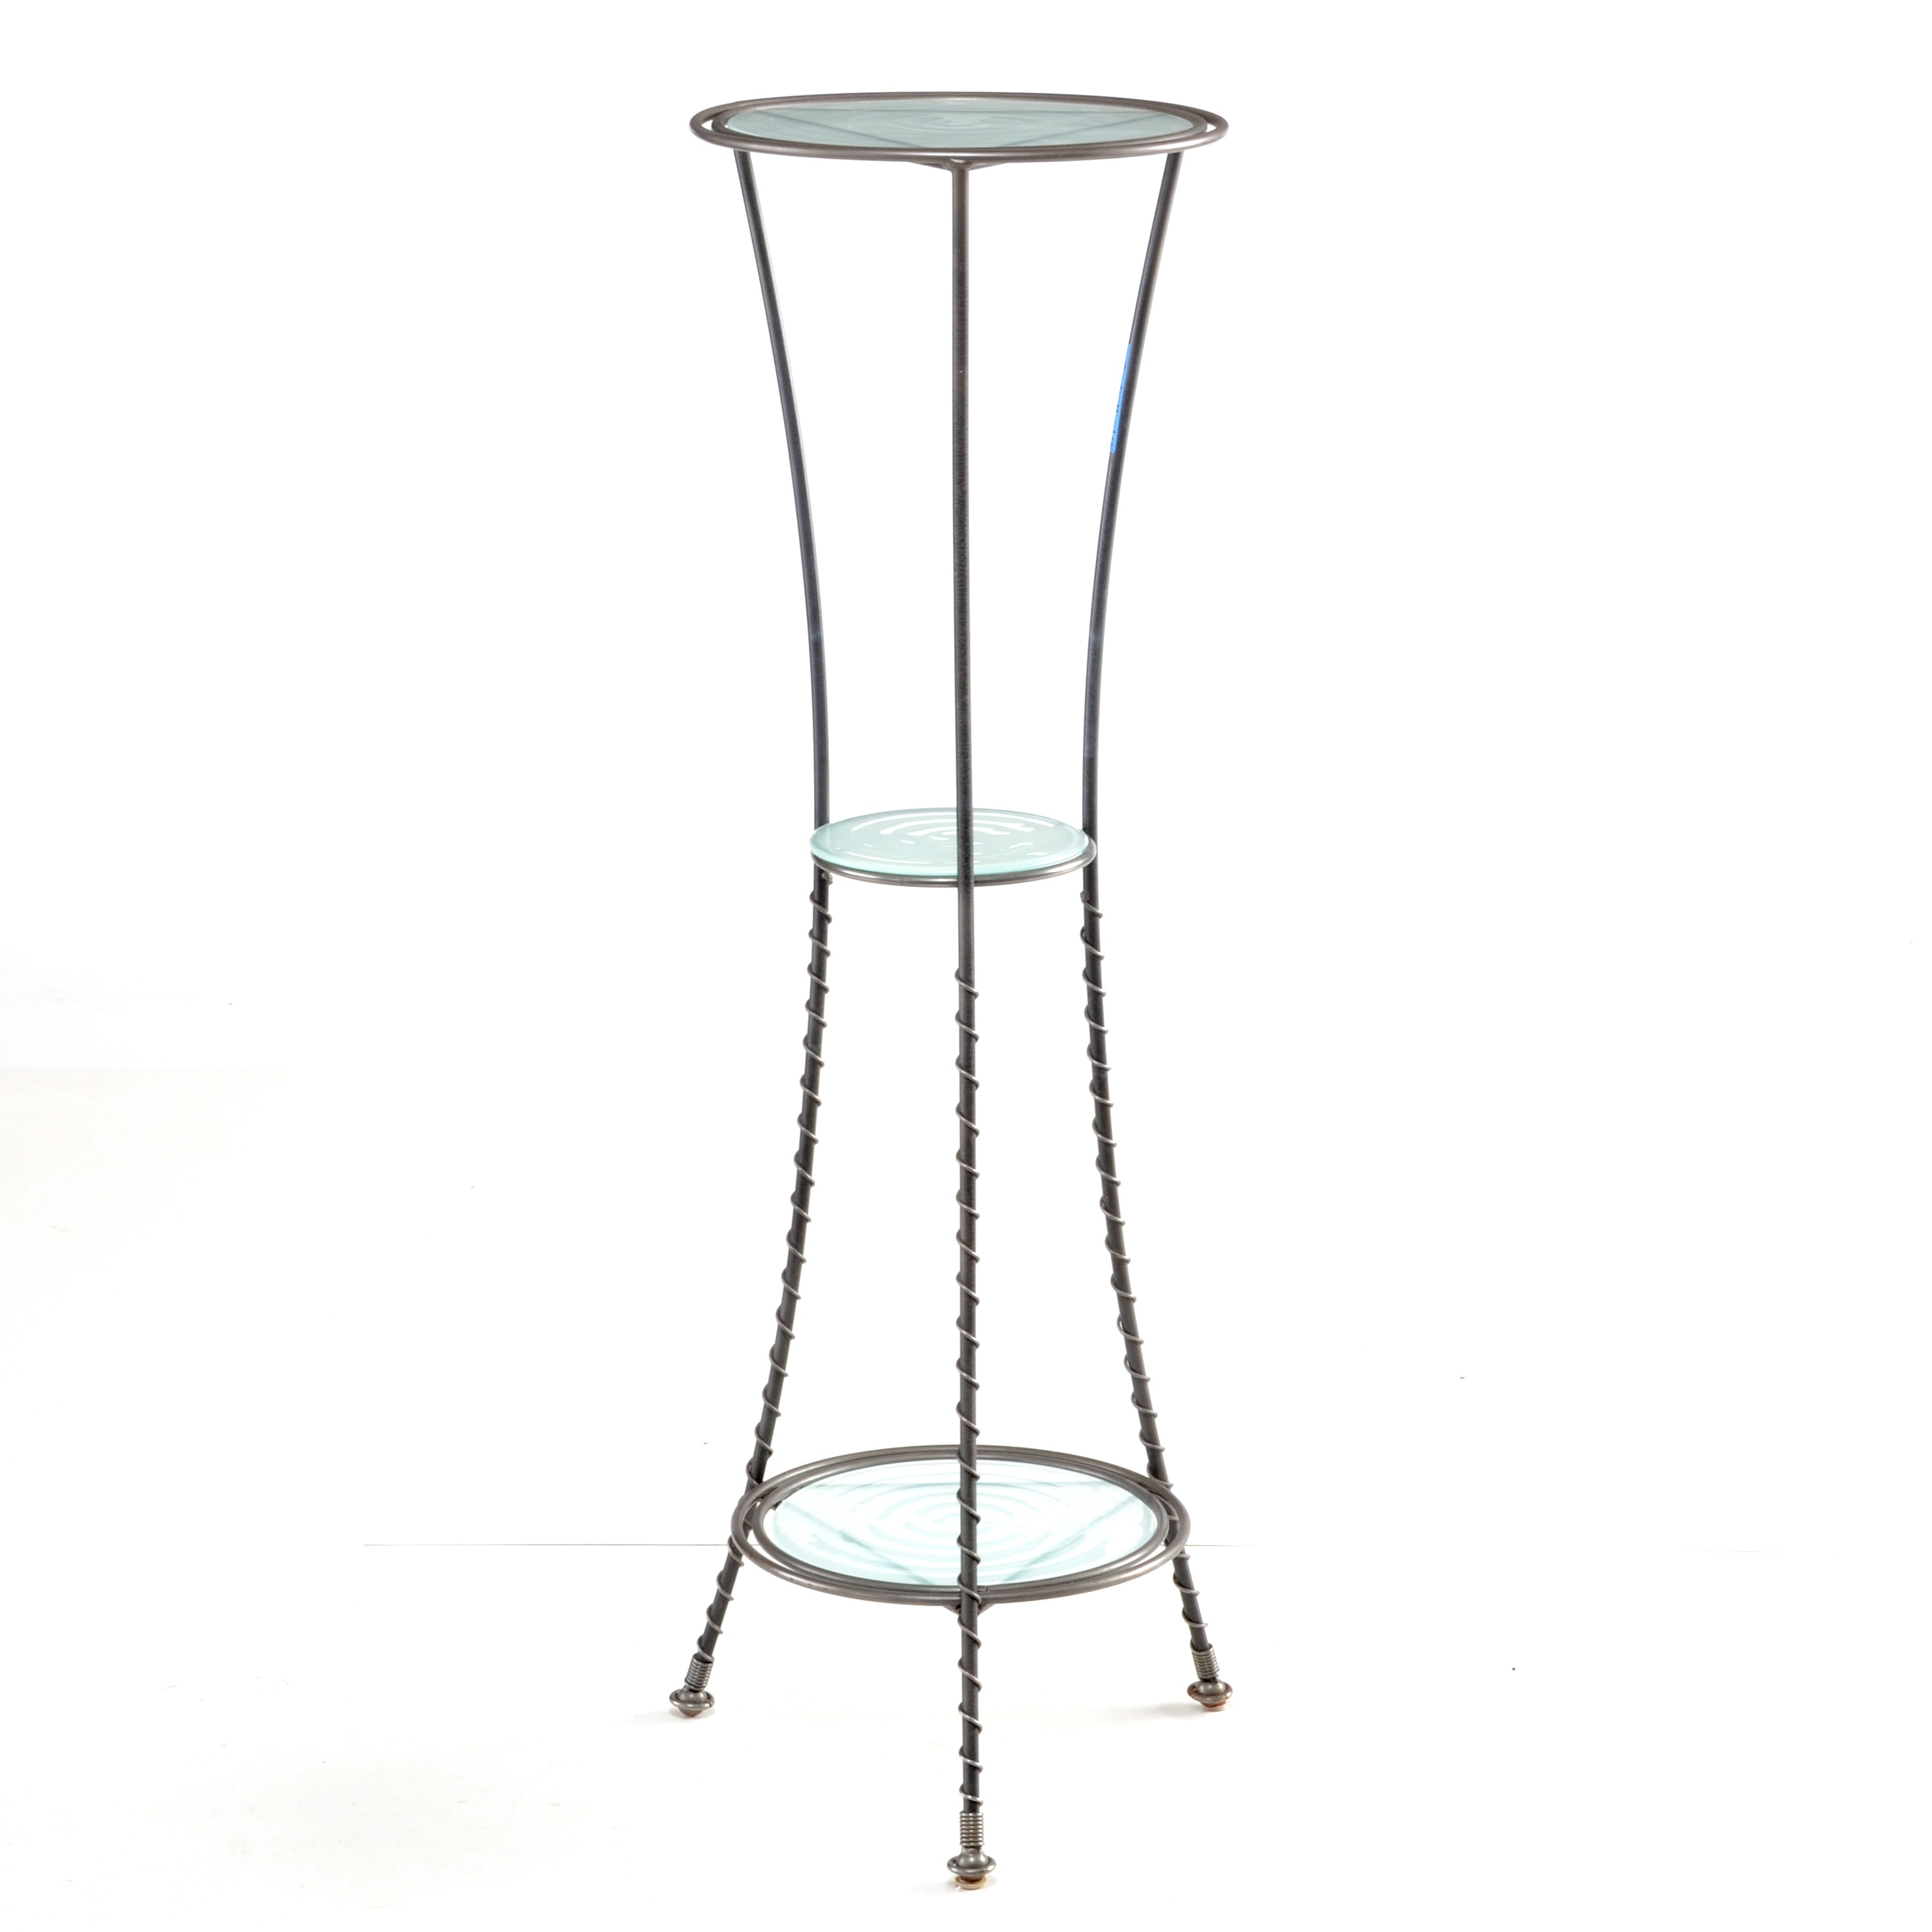 Contemporary Three-Tier Plant Stand